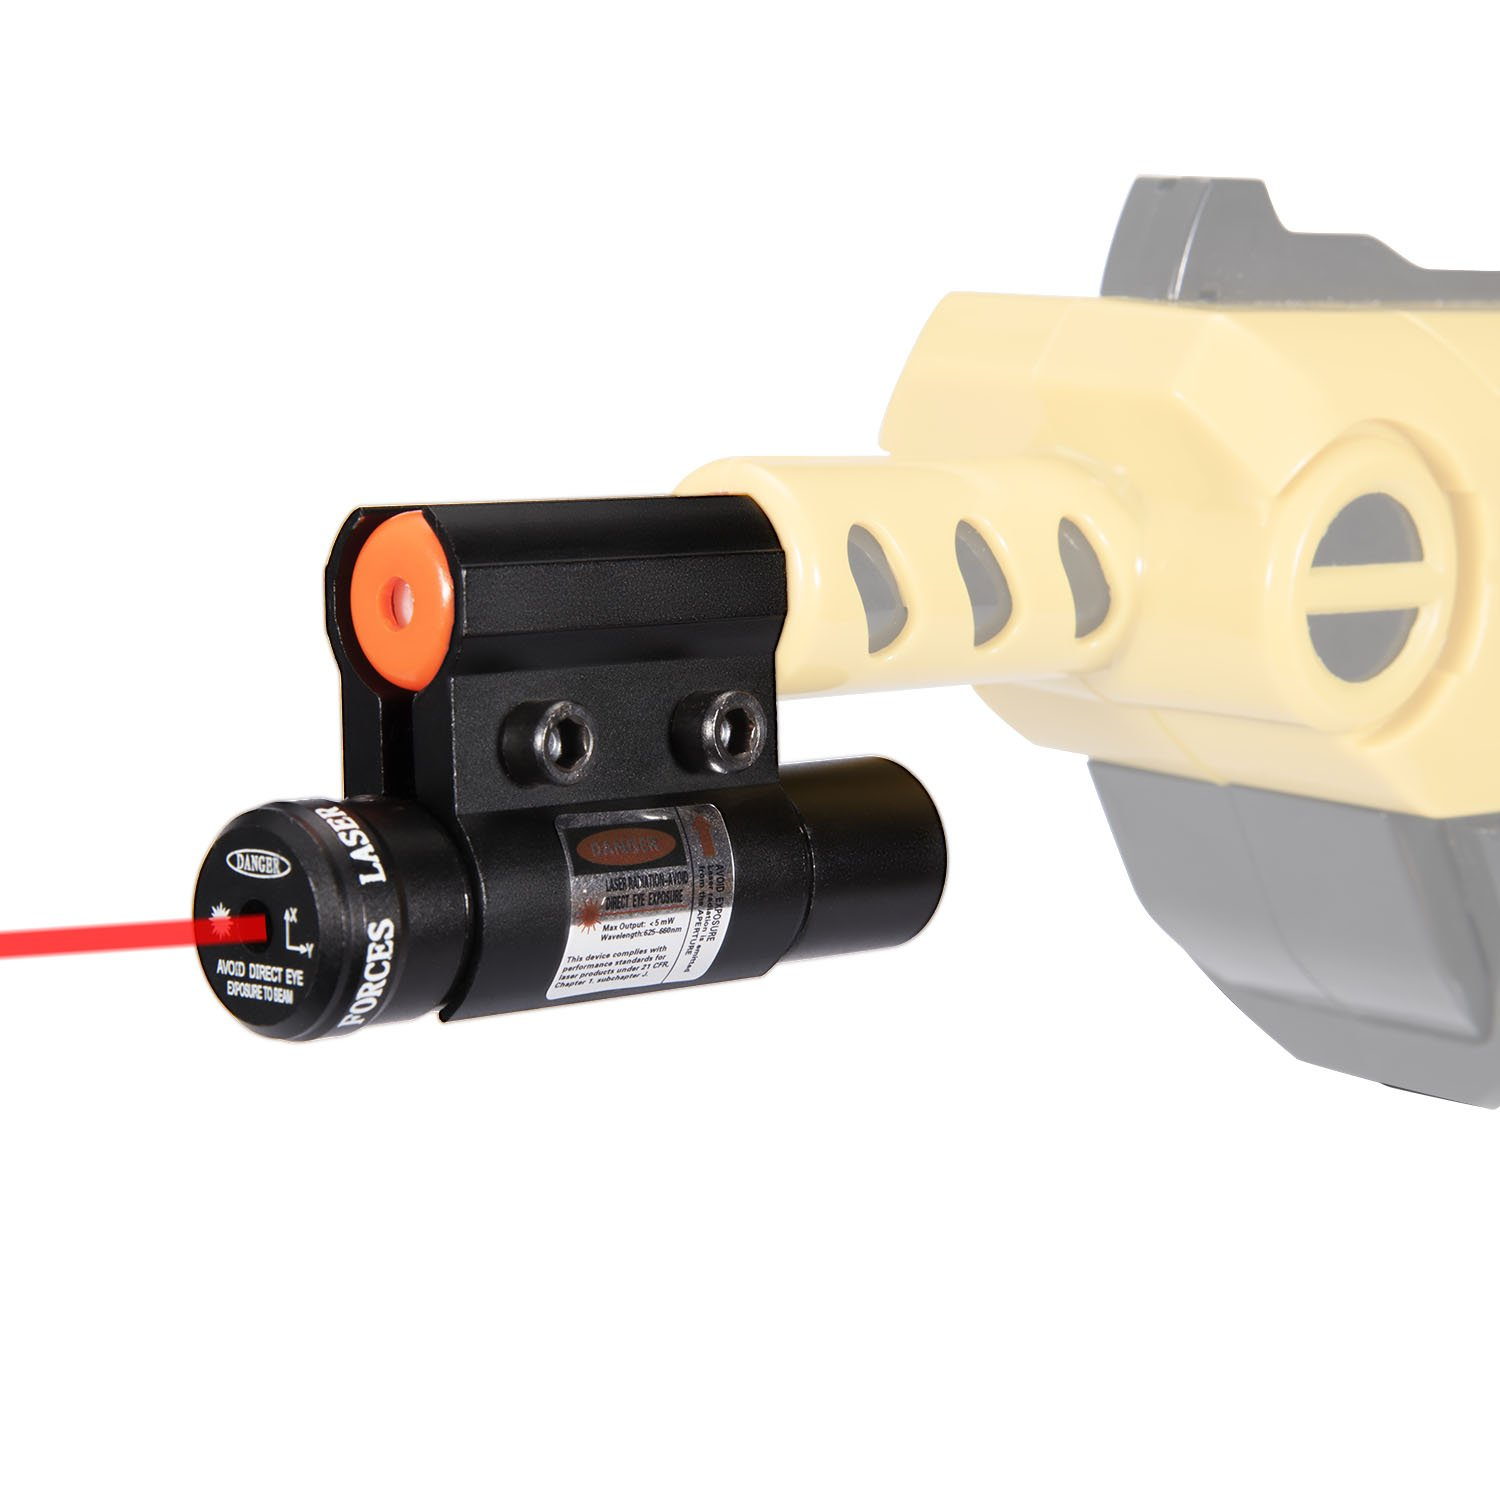 Deyard Laser Sight for Bug A Salt 2.0 Fly Gun Lawn & Garden Eradication Beam Spot Aiming Sight in Red Color(Battery Included)